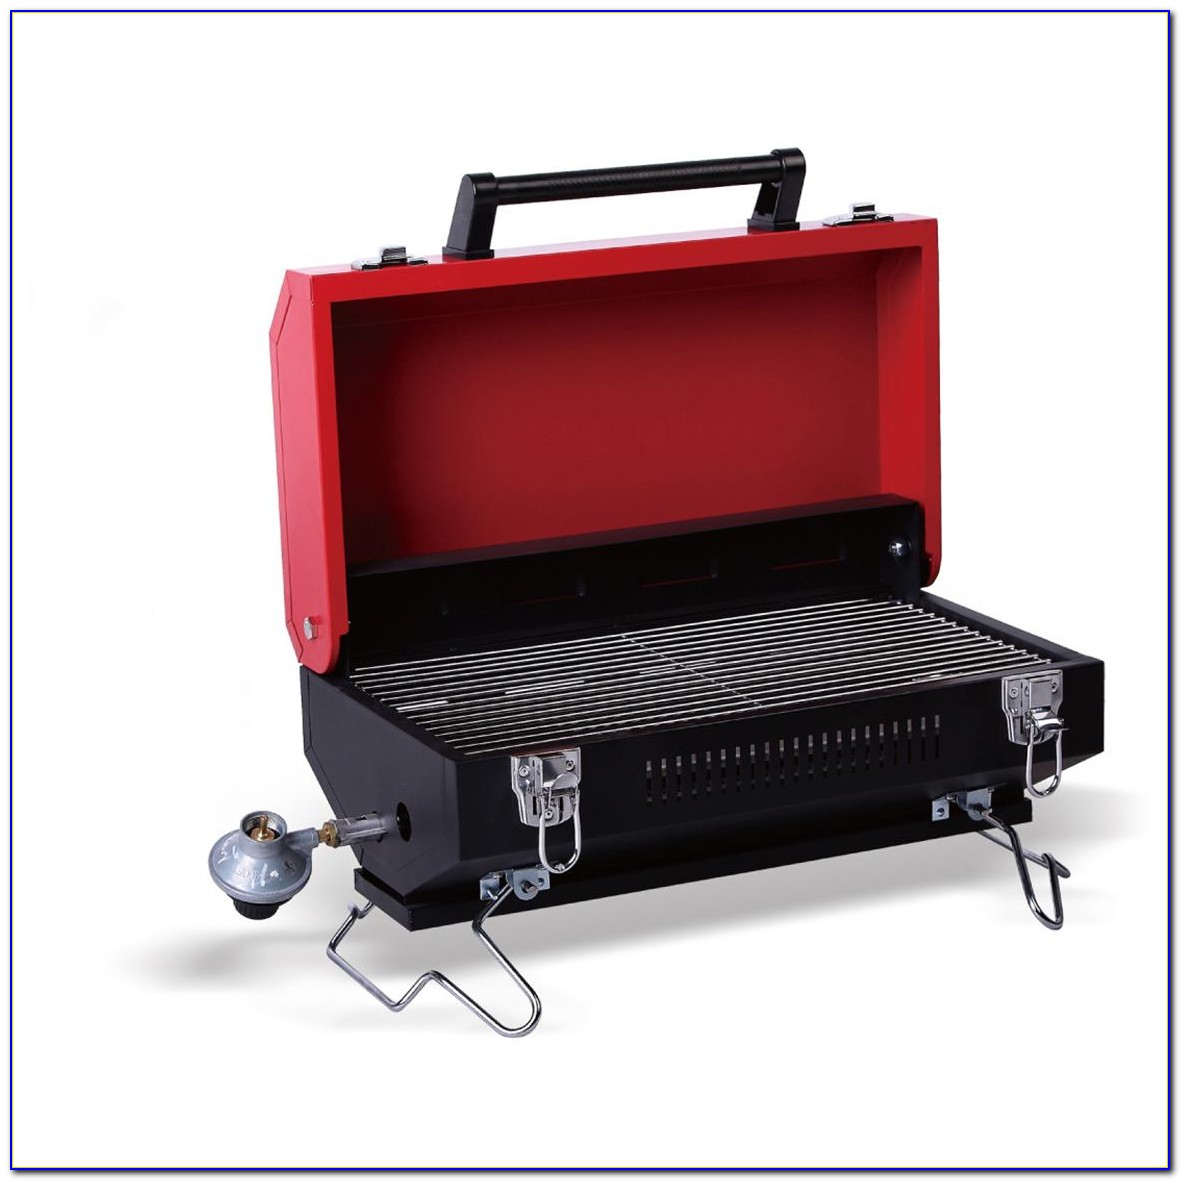 Infrared Tabletop Grill